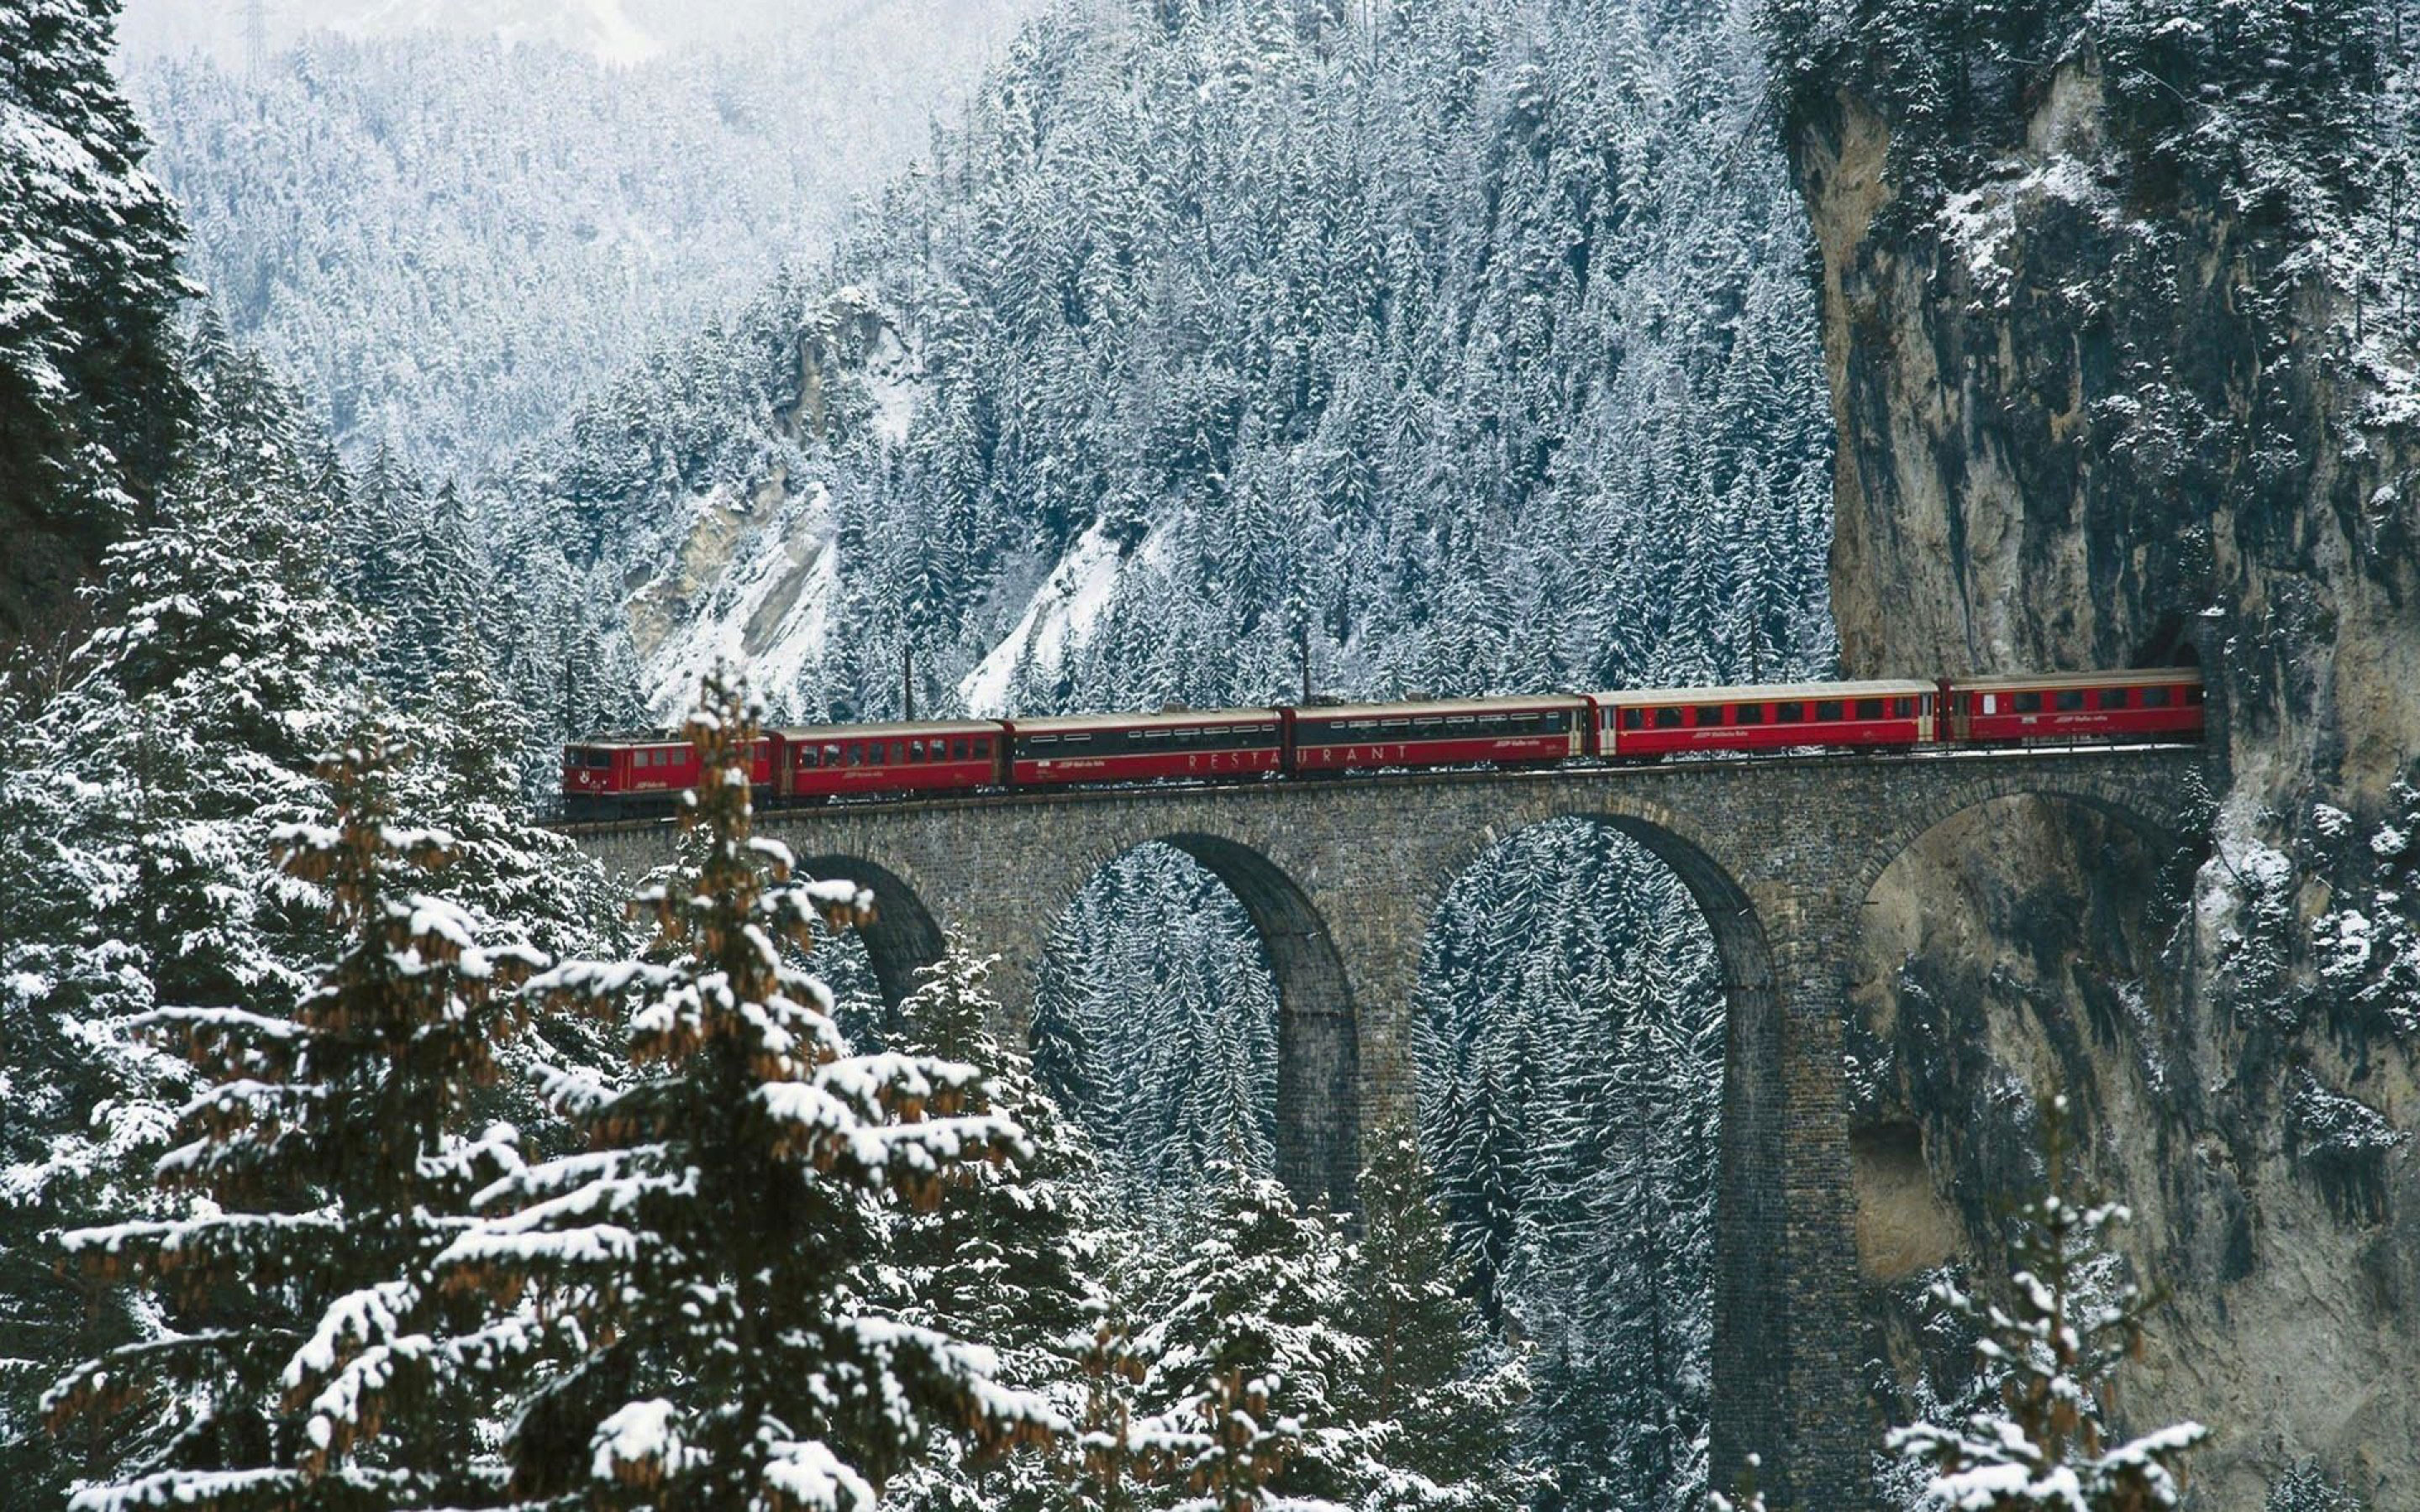 Landwasser Viaduct in Winter